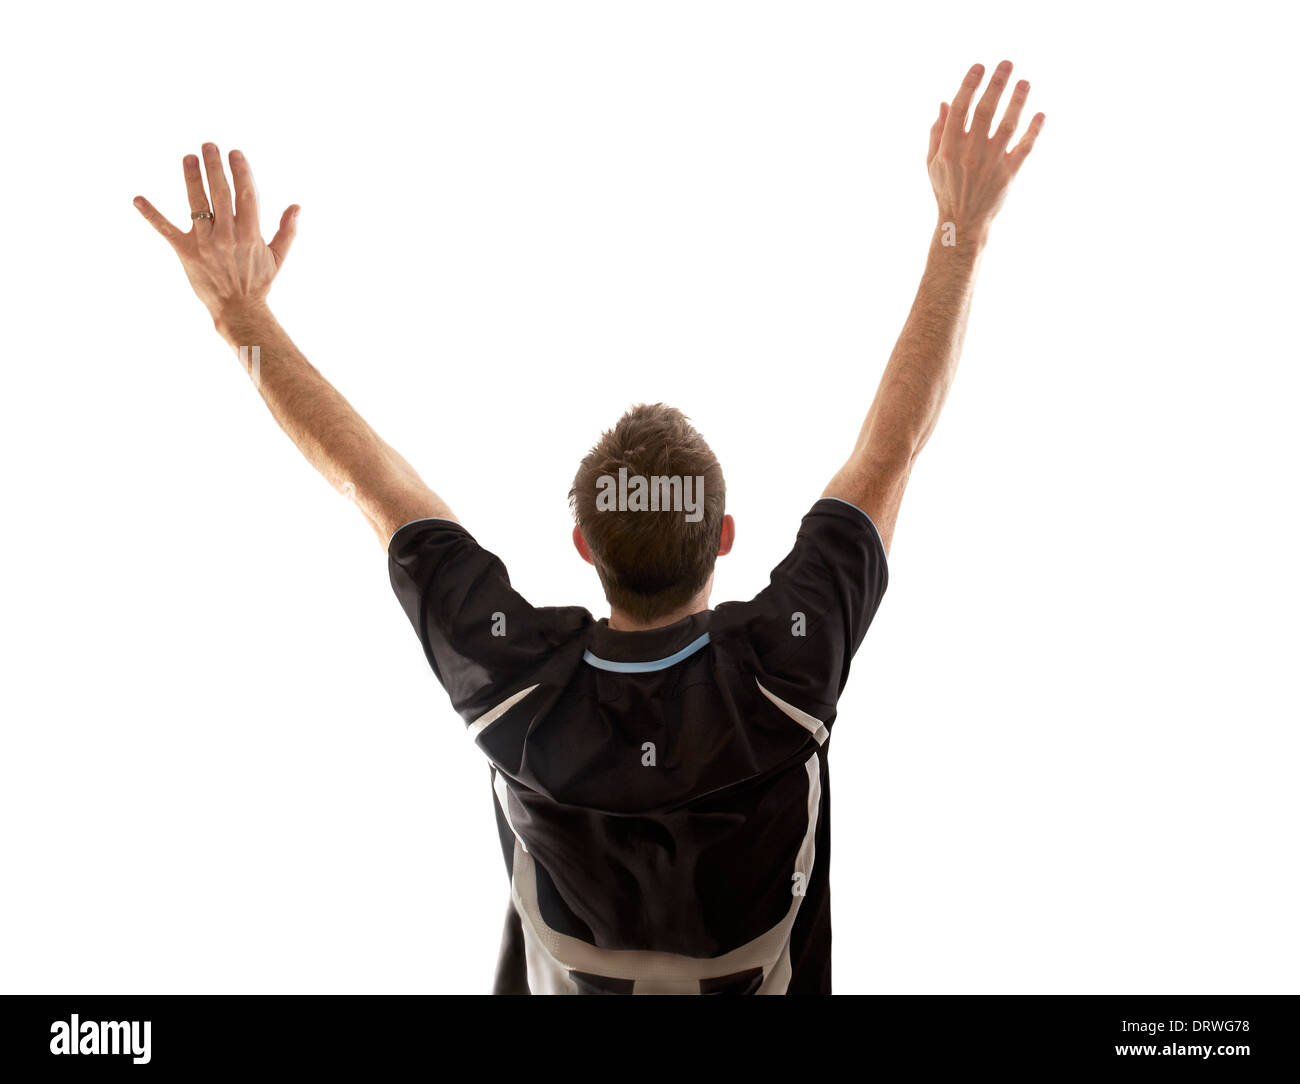 A man celebrating a goal at a football match on a white background. - Stock Image